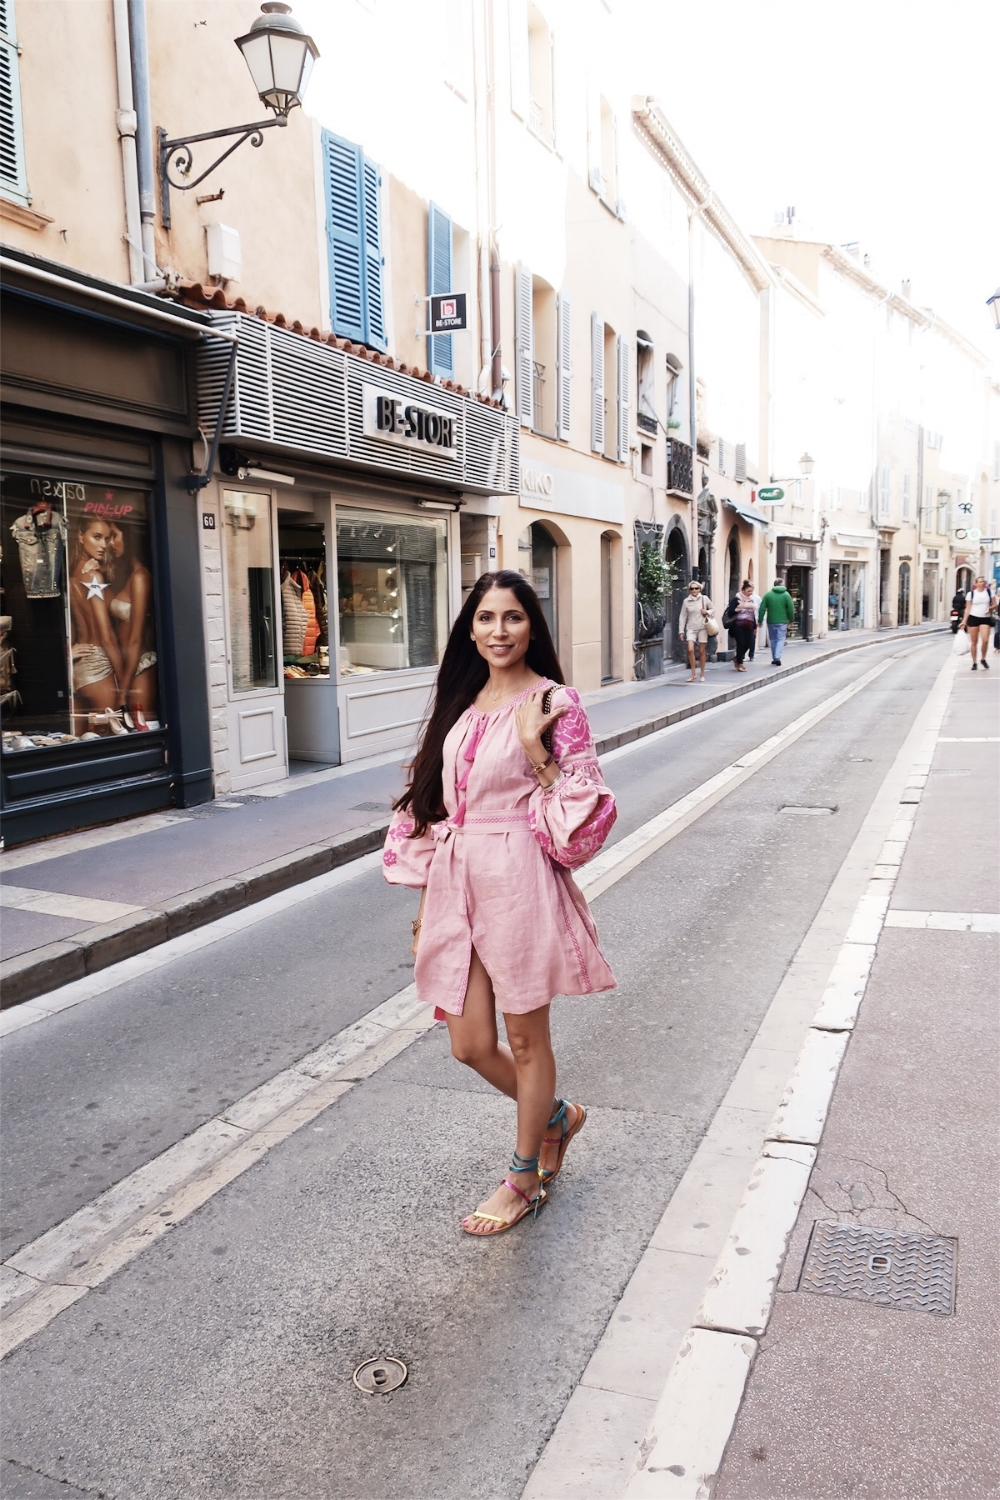 Posing on the streets of St. Tropez